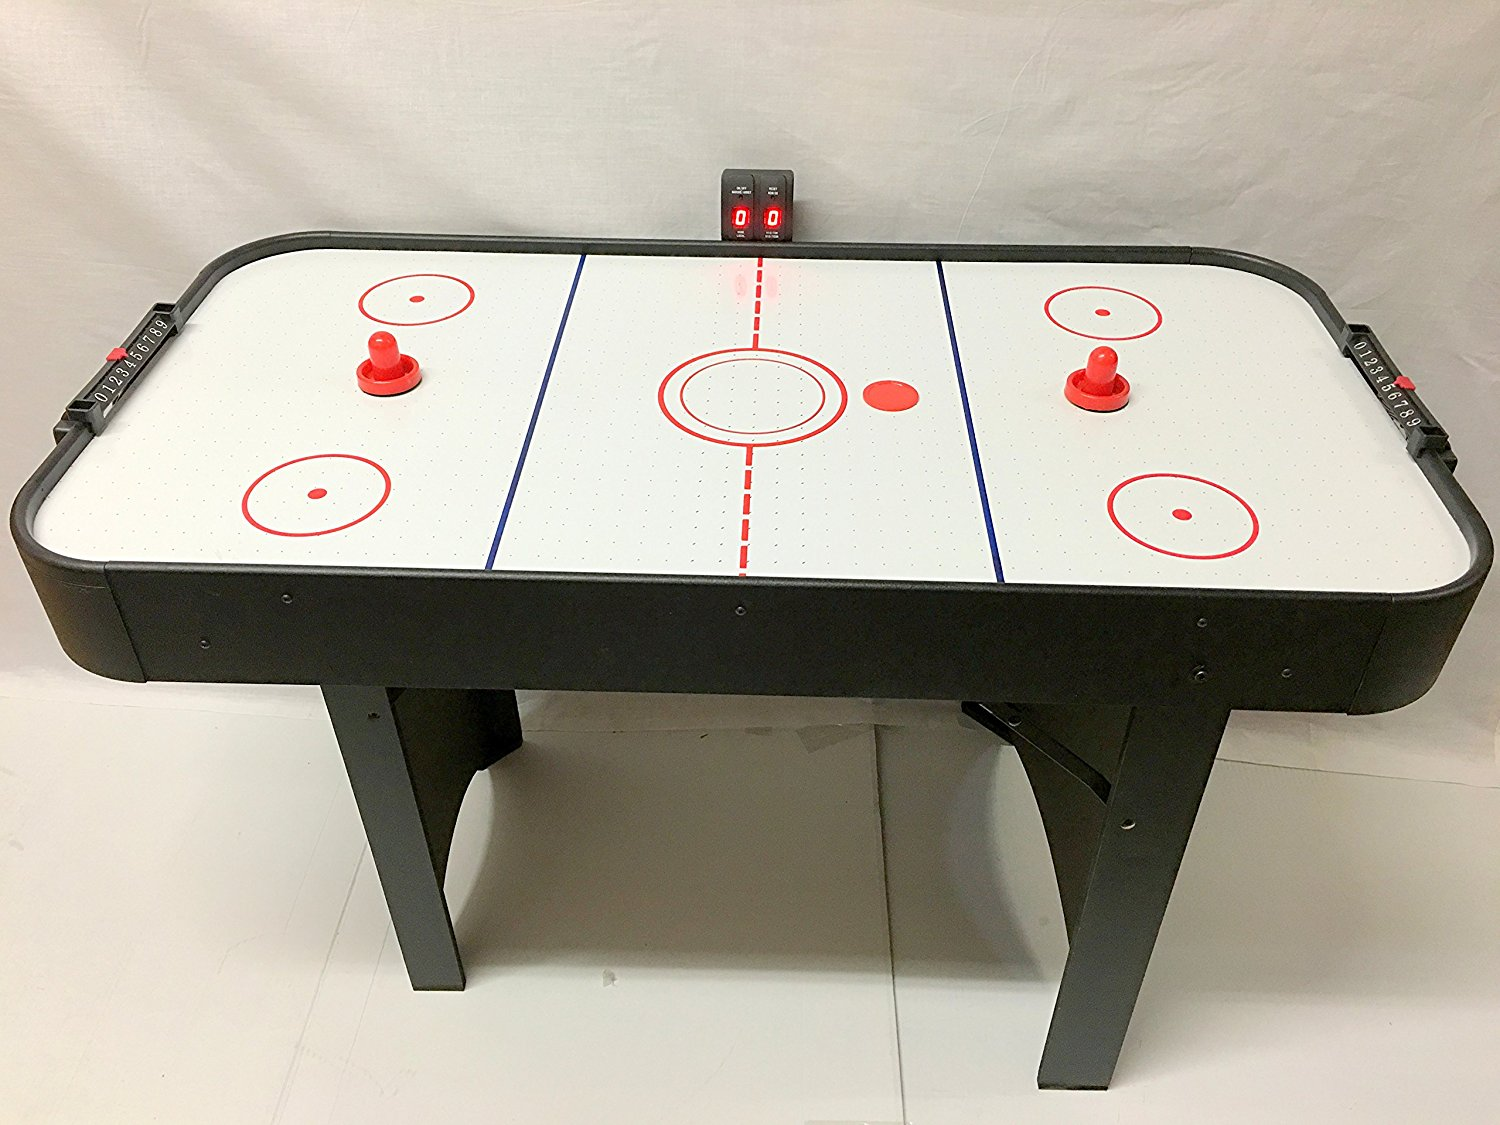 Diy mini air hockey table table designs 3 easy to fold up air hockey tables in 2018 game room experts greentooth Choice Image